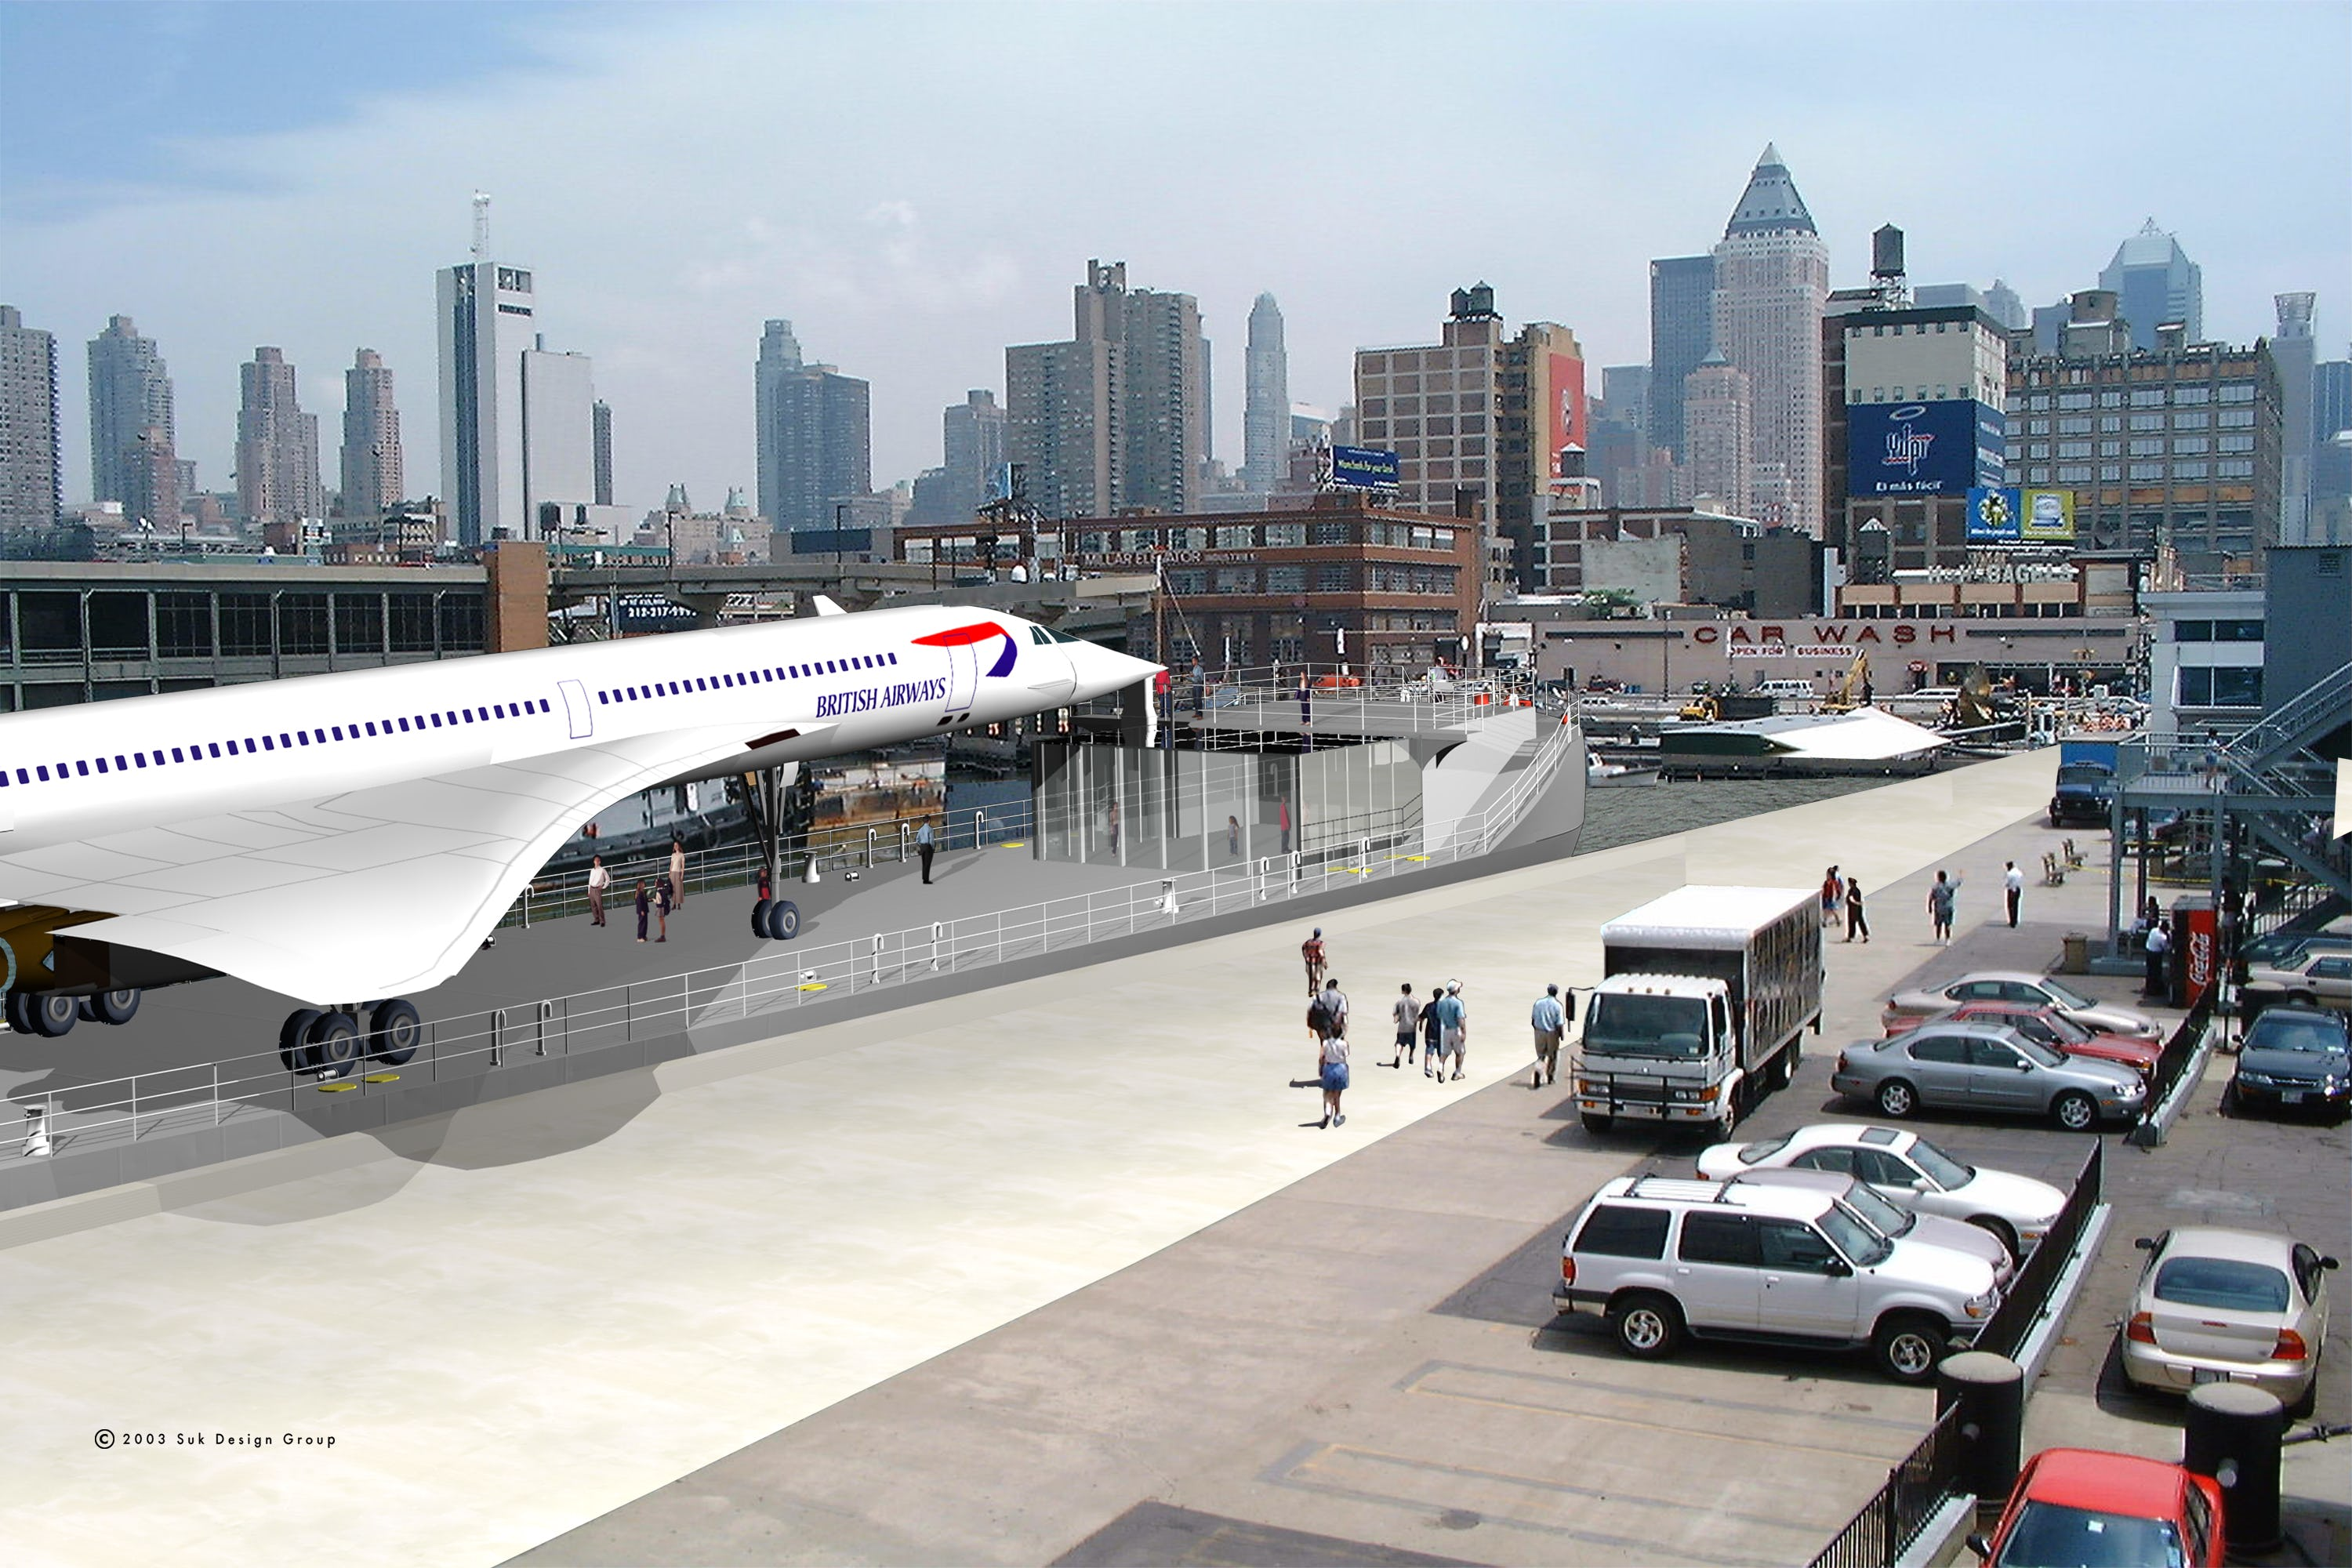 Concorde intrepid 16